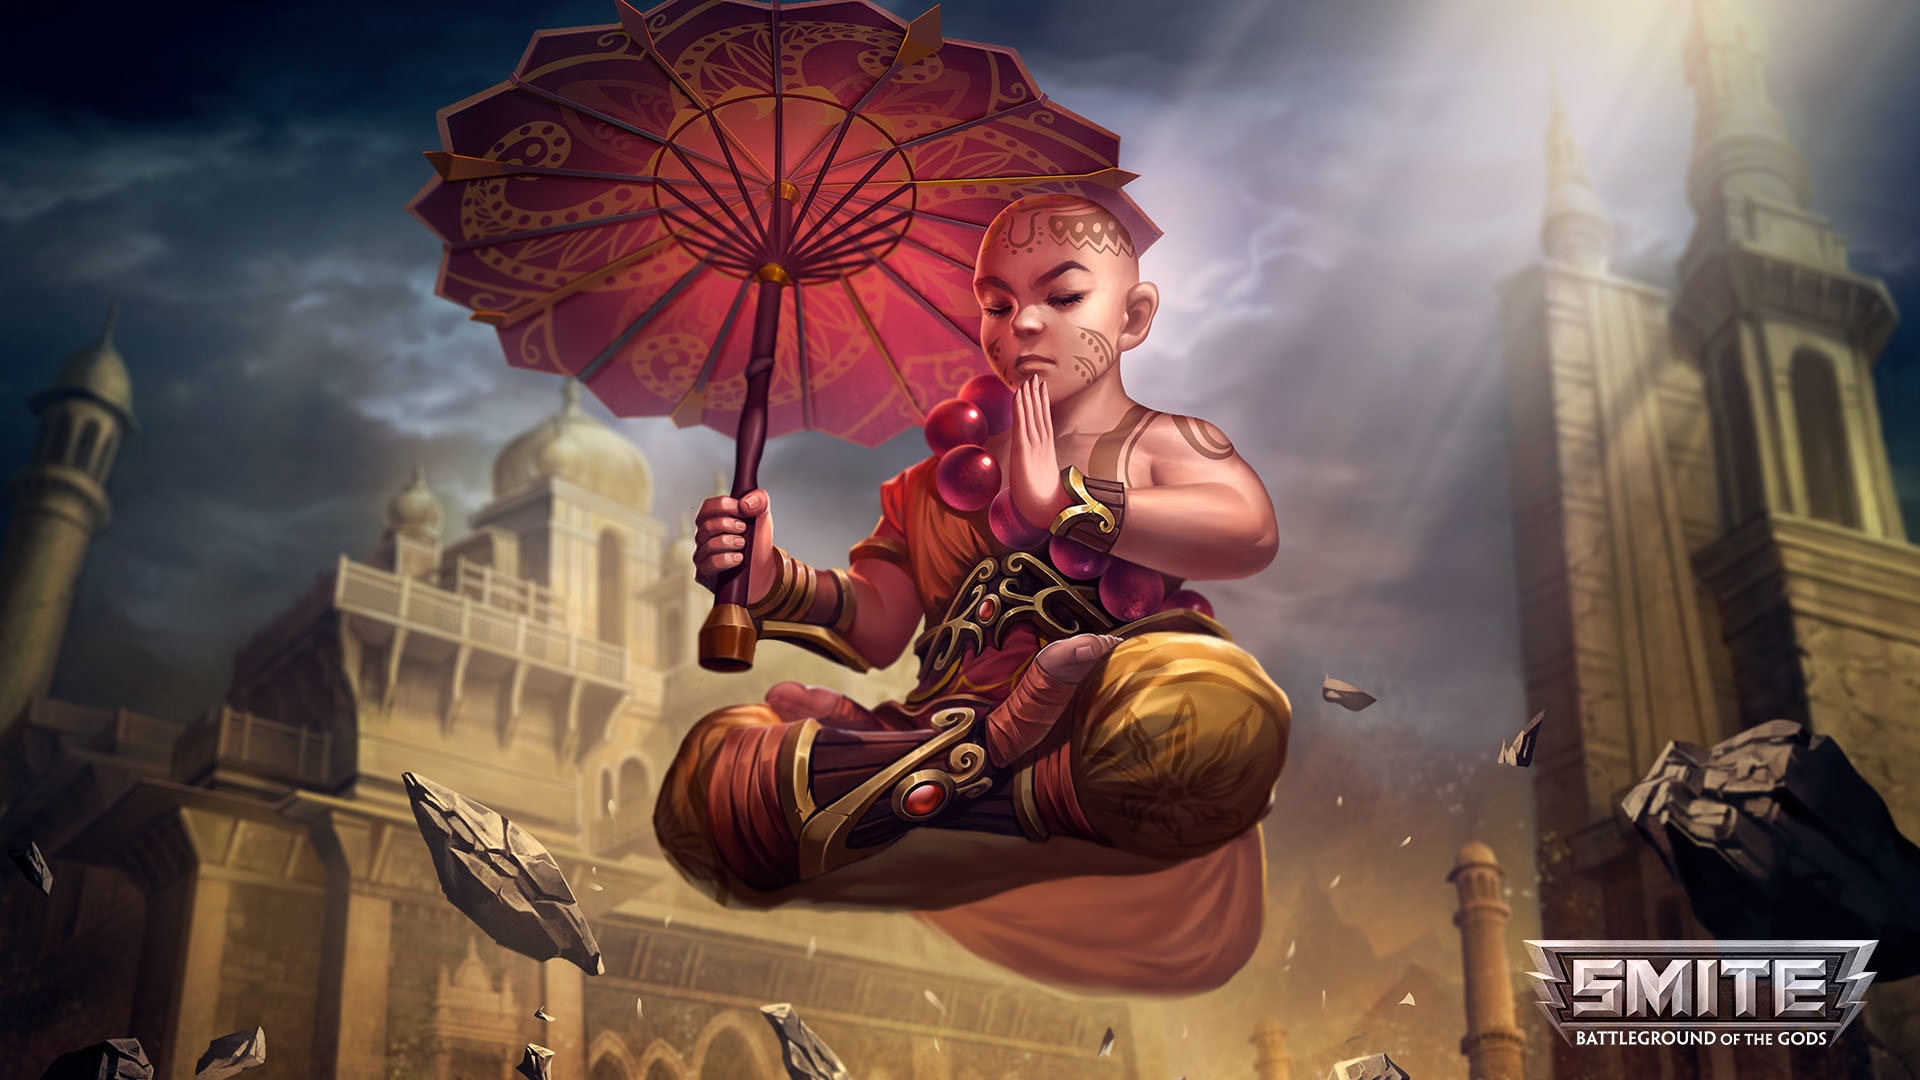 Free download Smite wallpaper ID:29262 hd 1920x1080 for PC